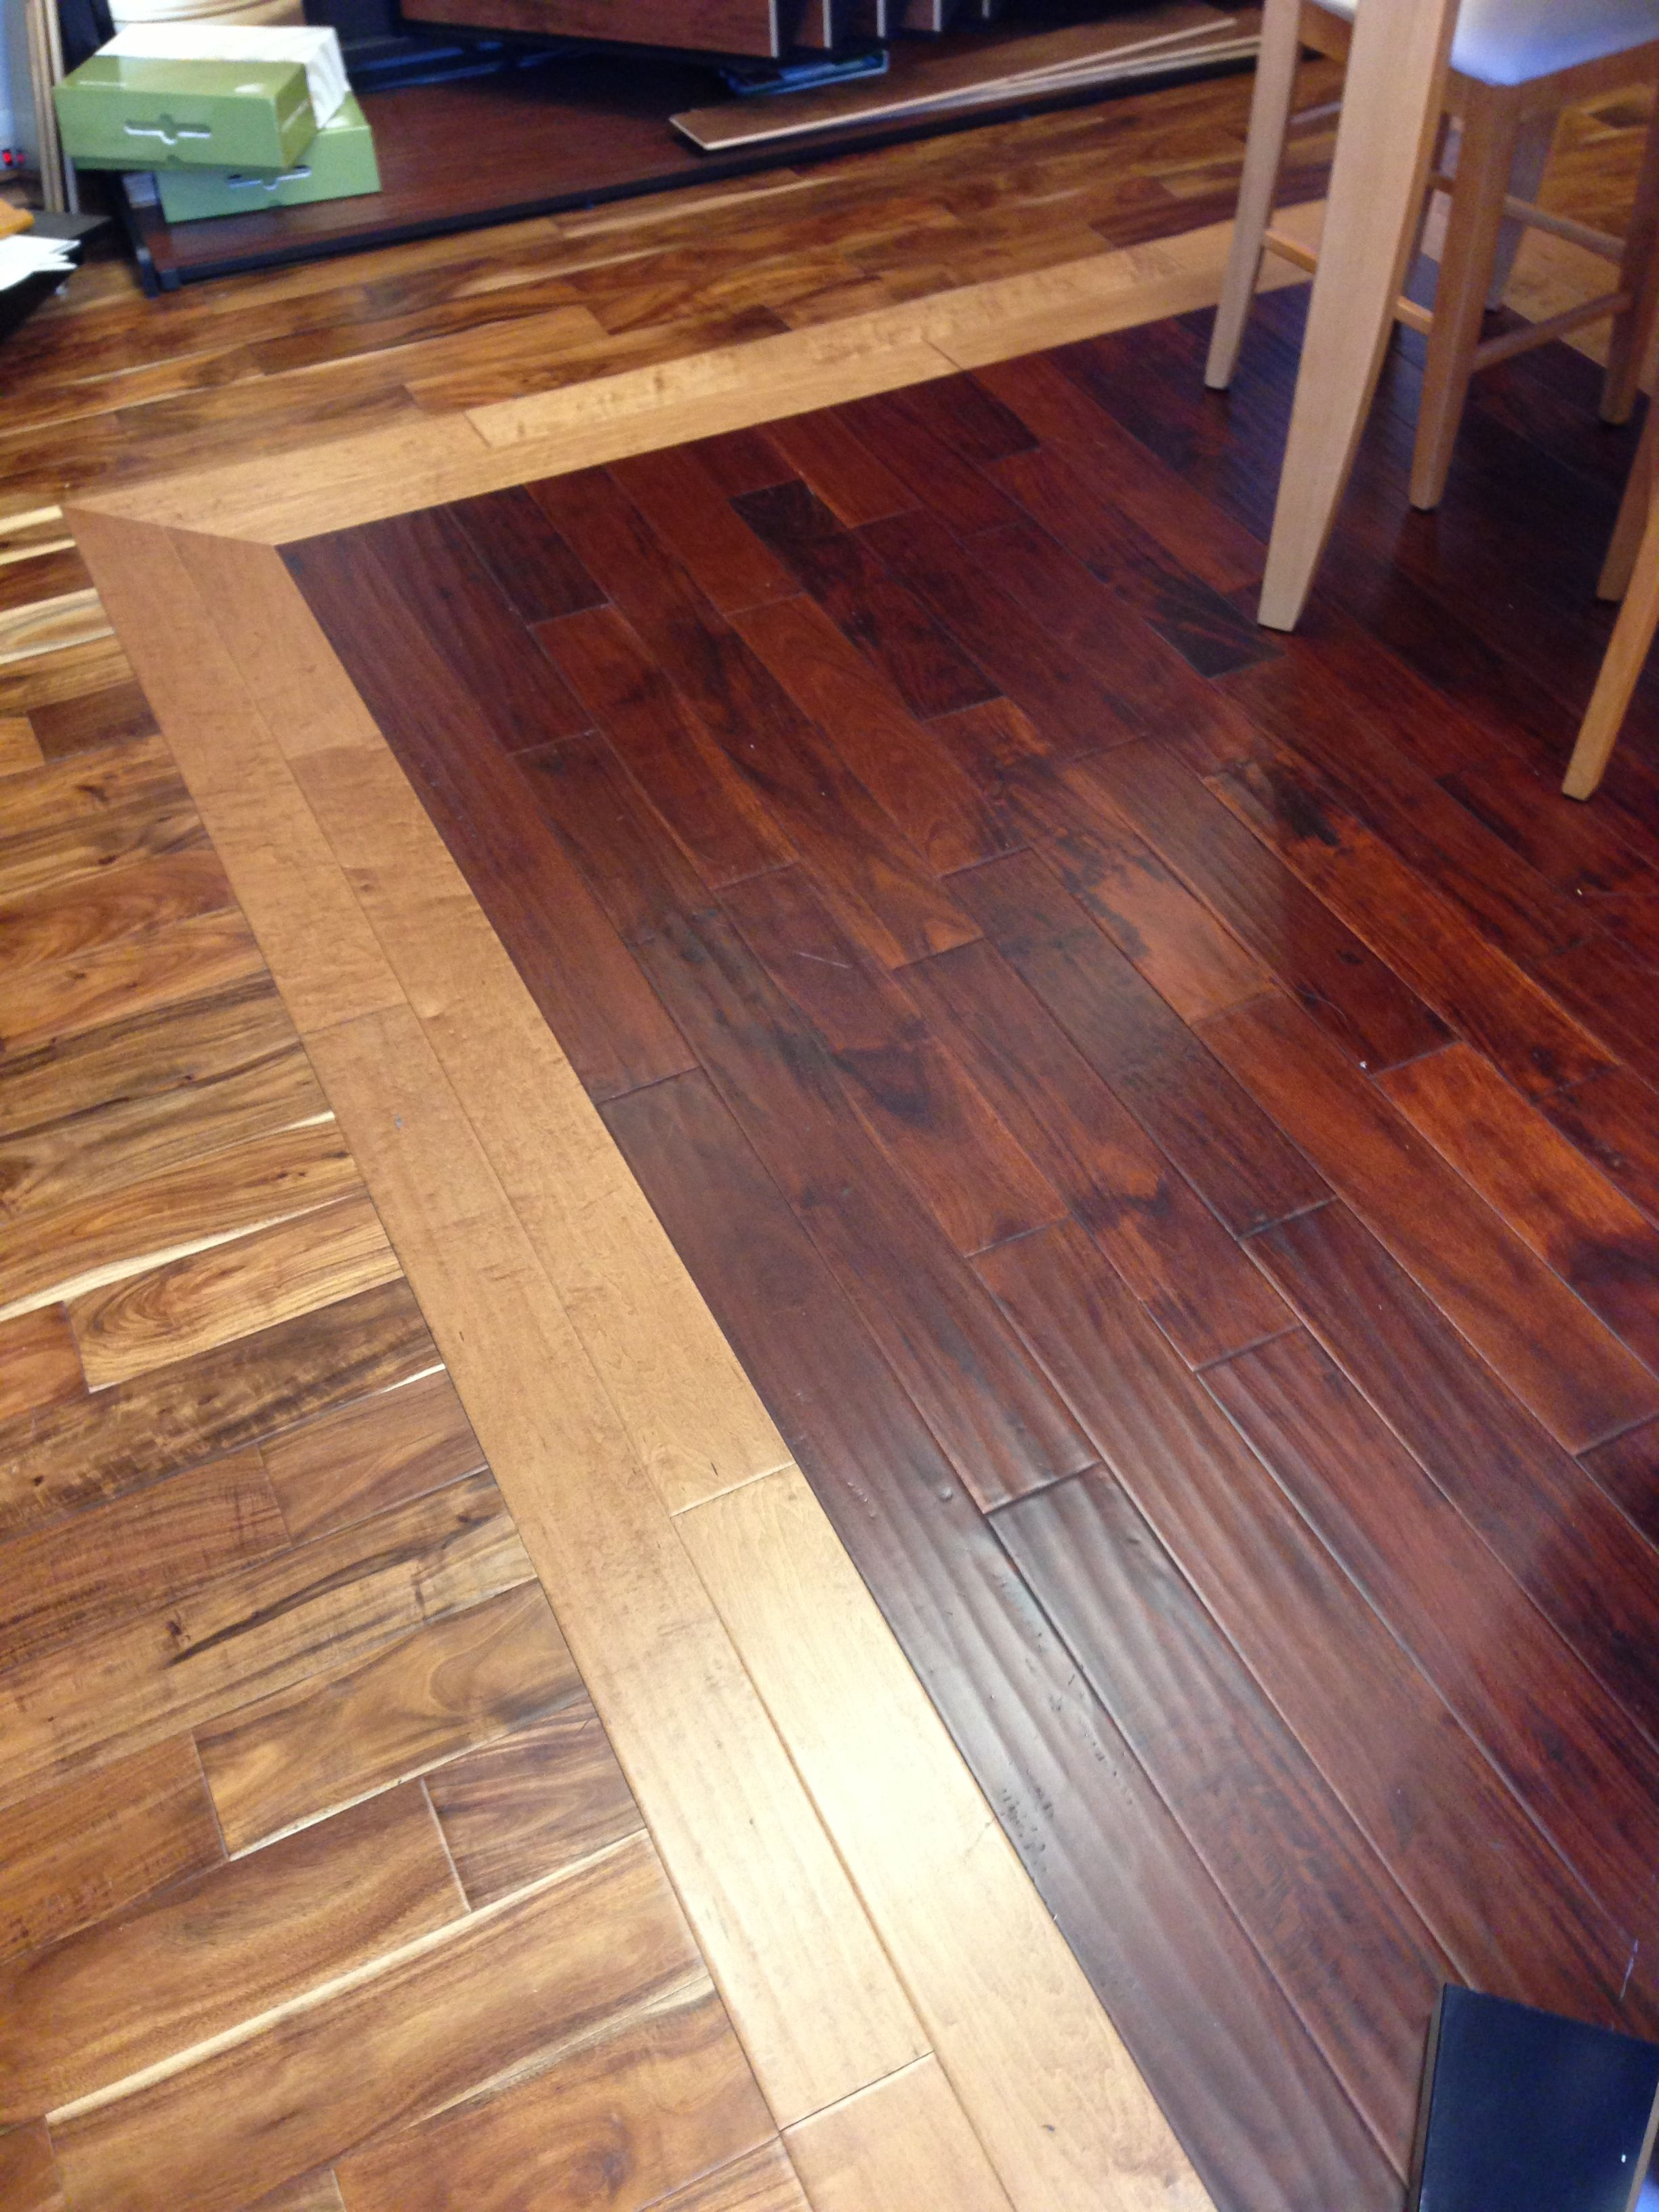 floors pin hill street blocks panel parquet wooden versailles with engineered chevron wood borders floor